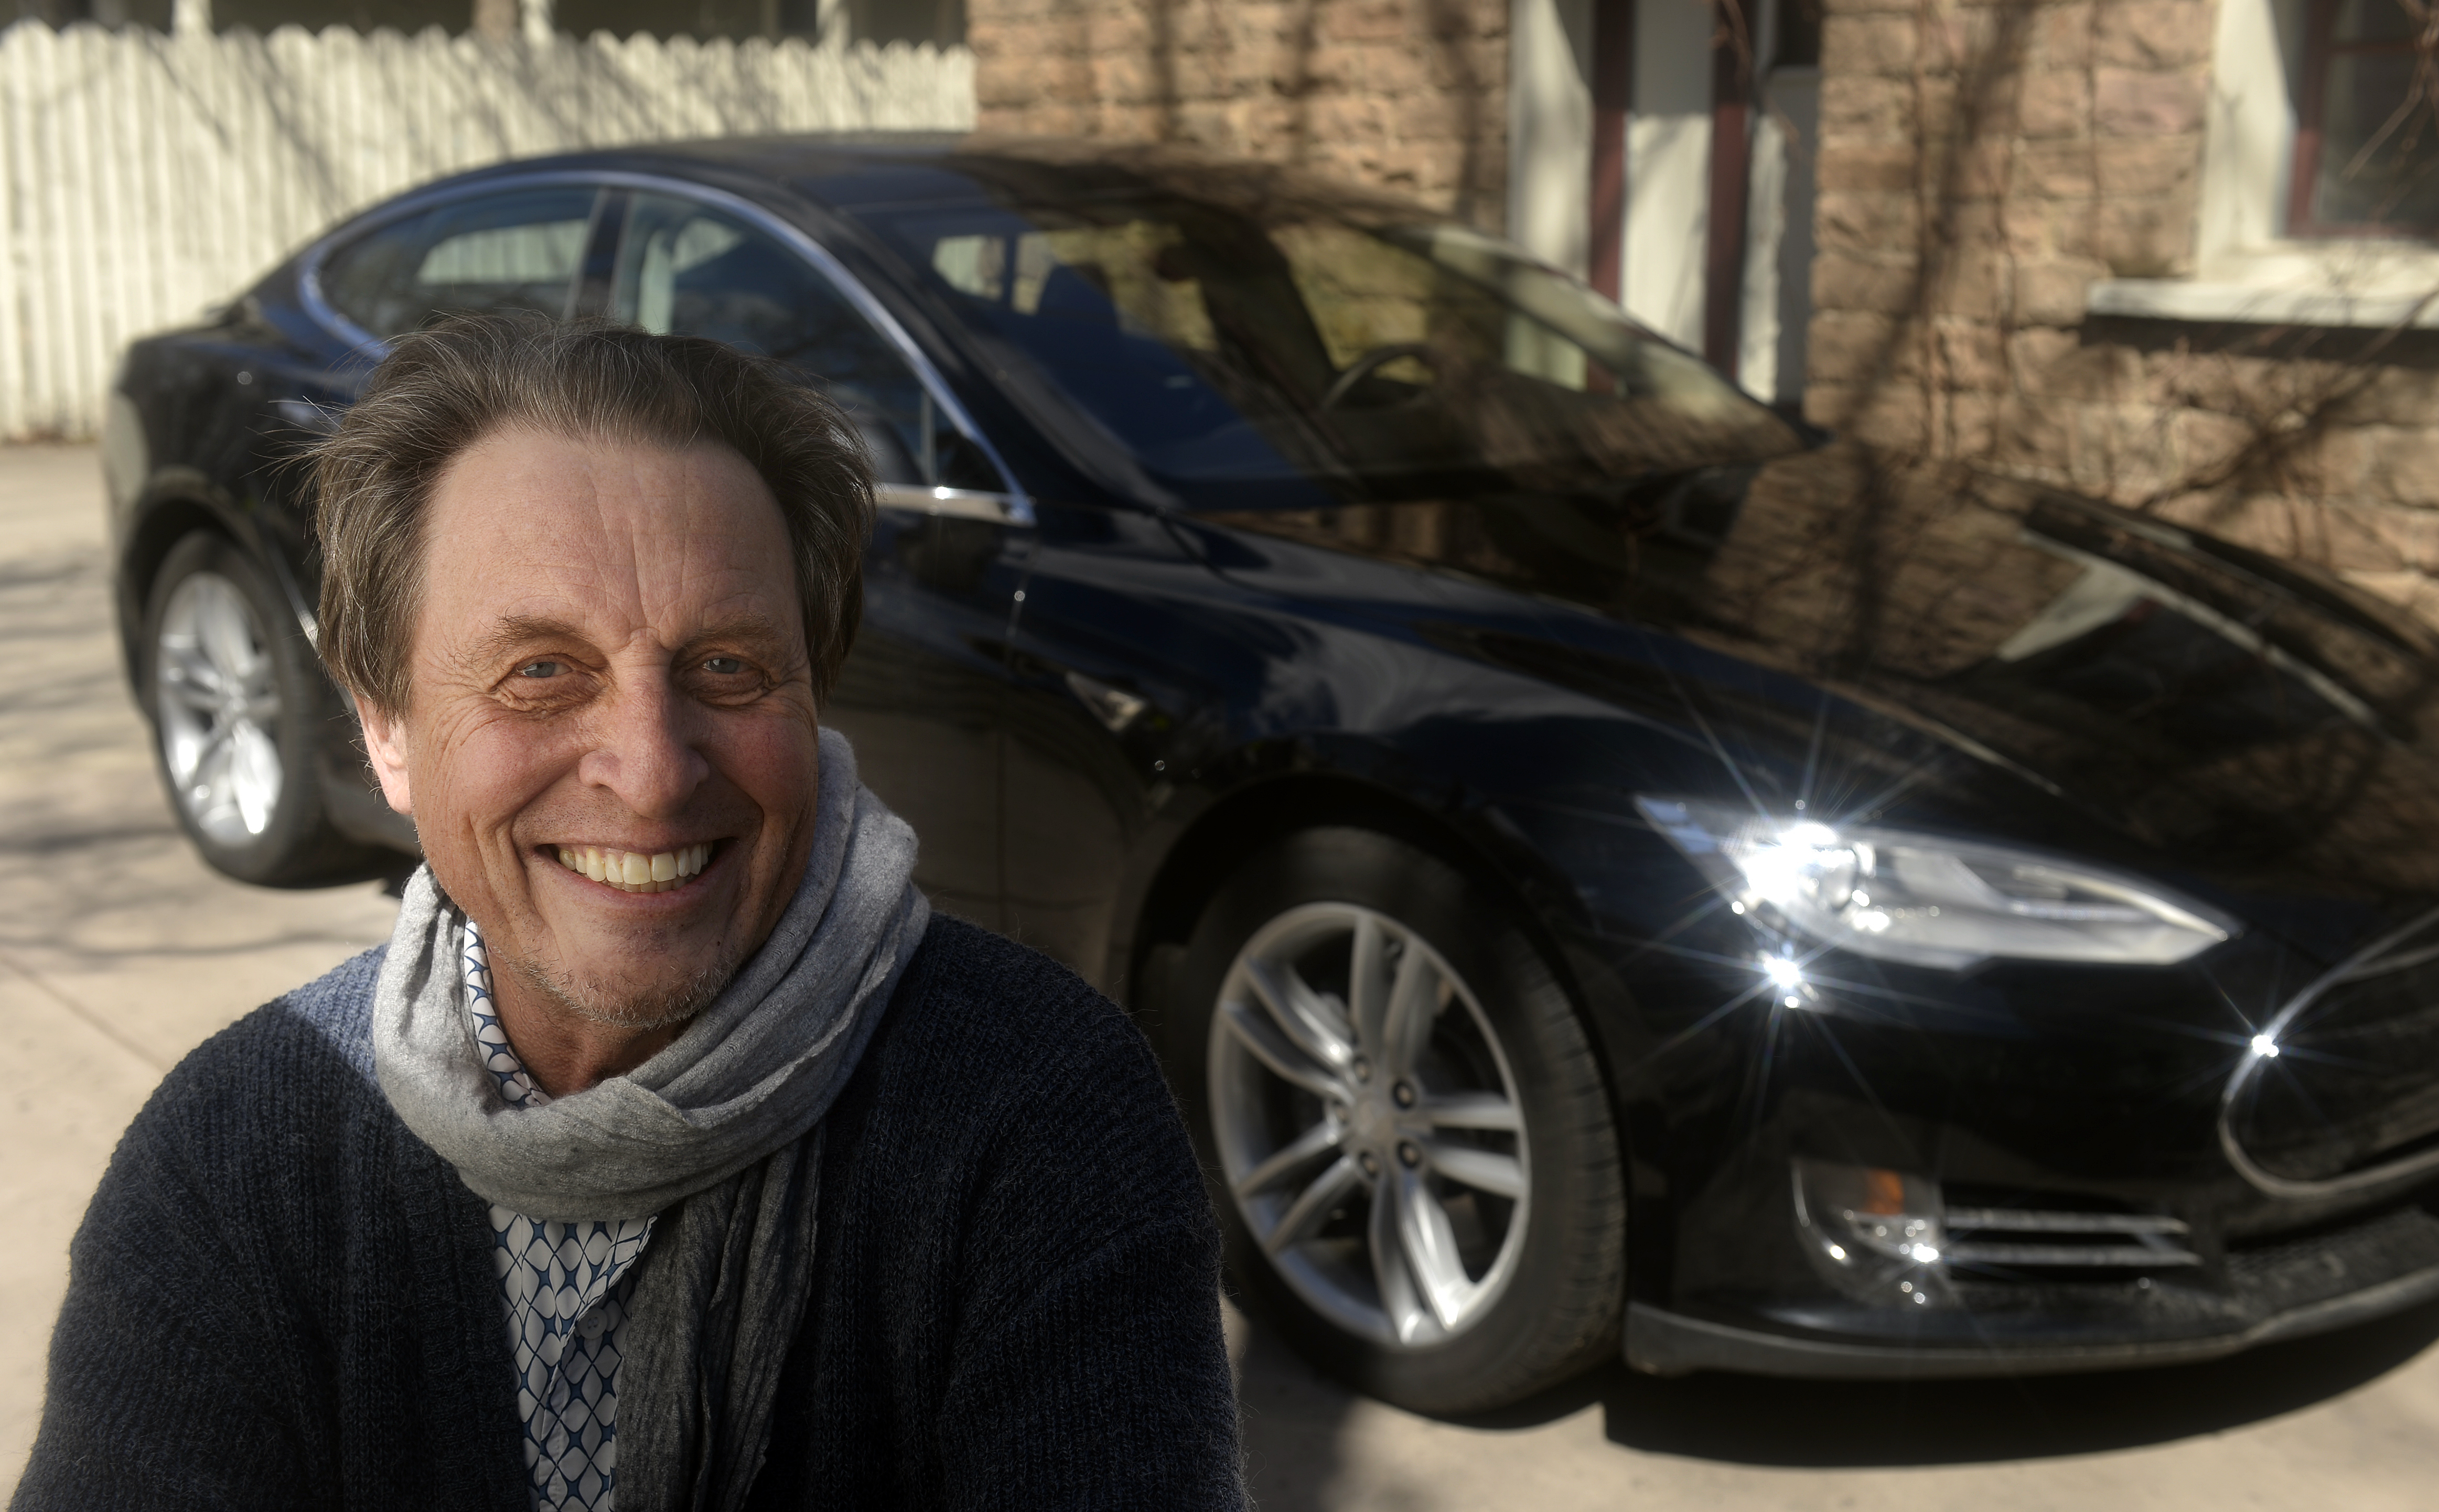 South African Errol Musk who the father of billionaire entrepreneur Elon Musk. In the background is a Tesla Model S.